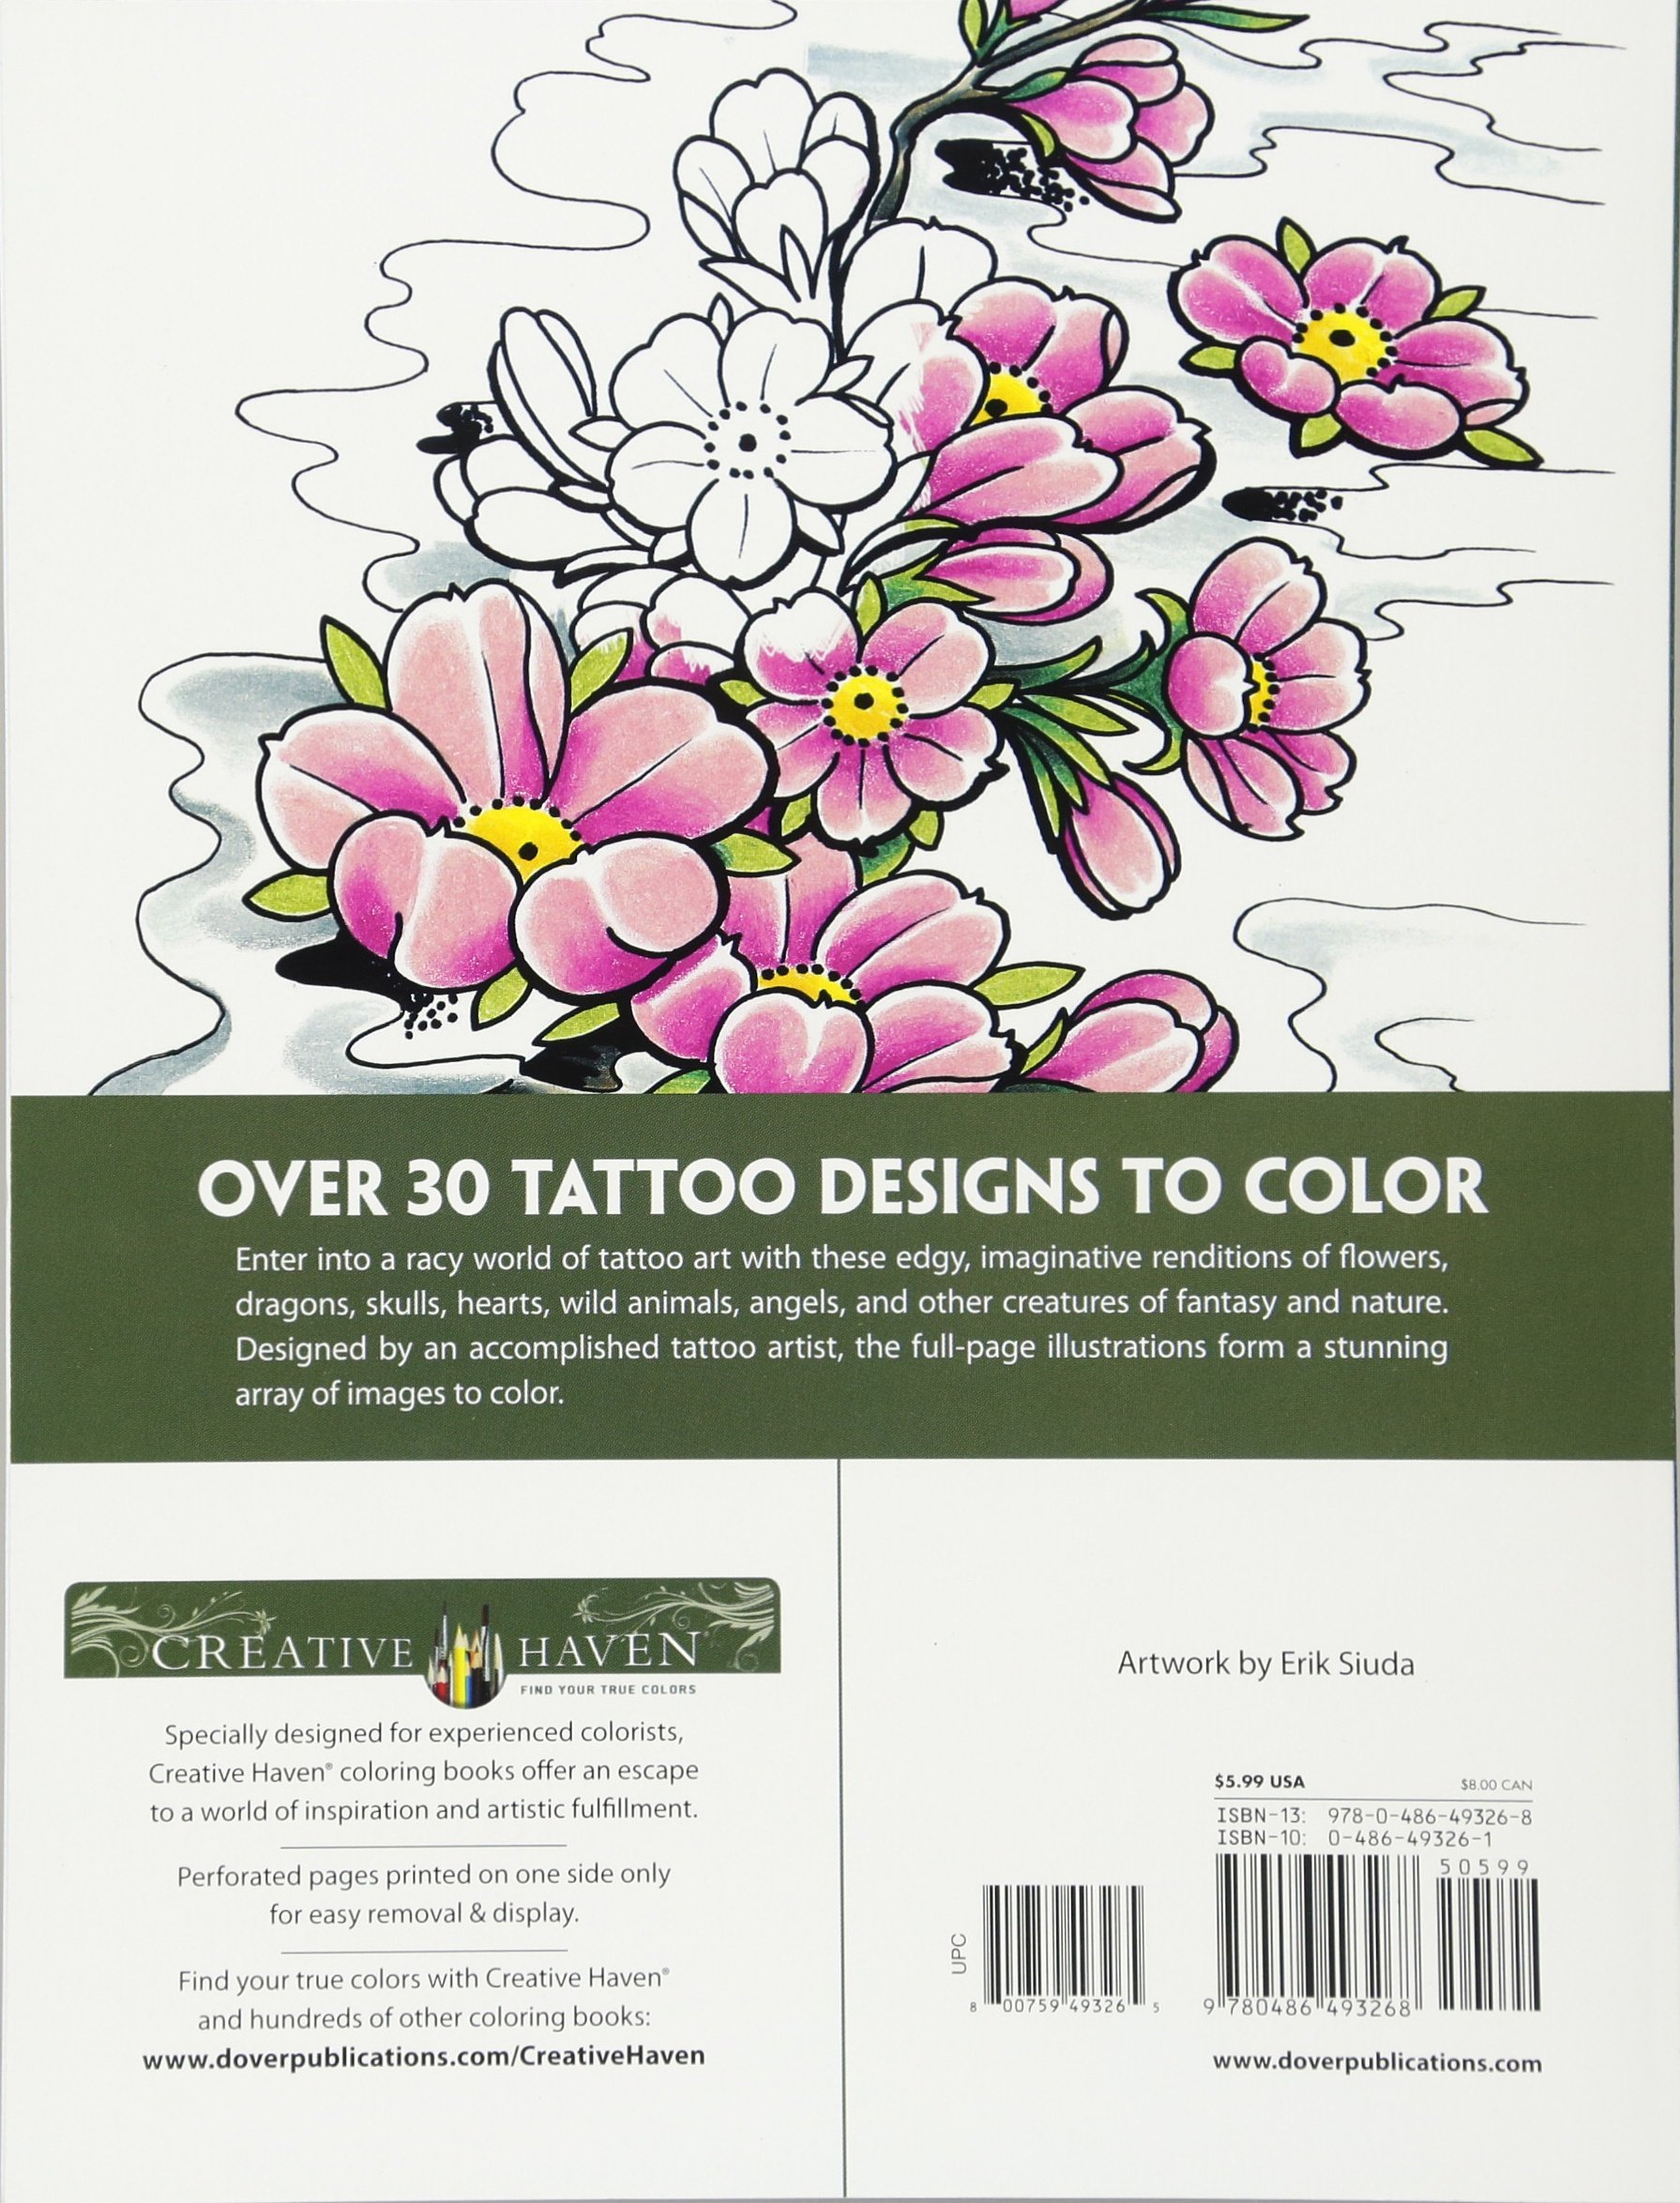 creative haven modern tattoo designs coloring book creative haven